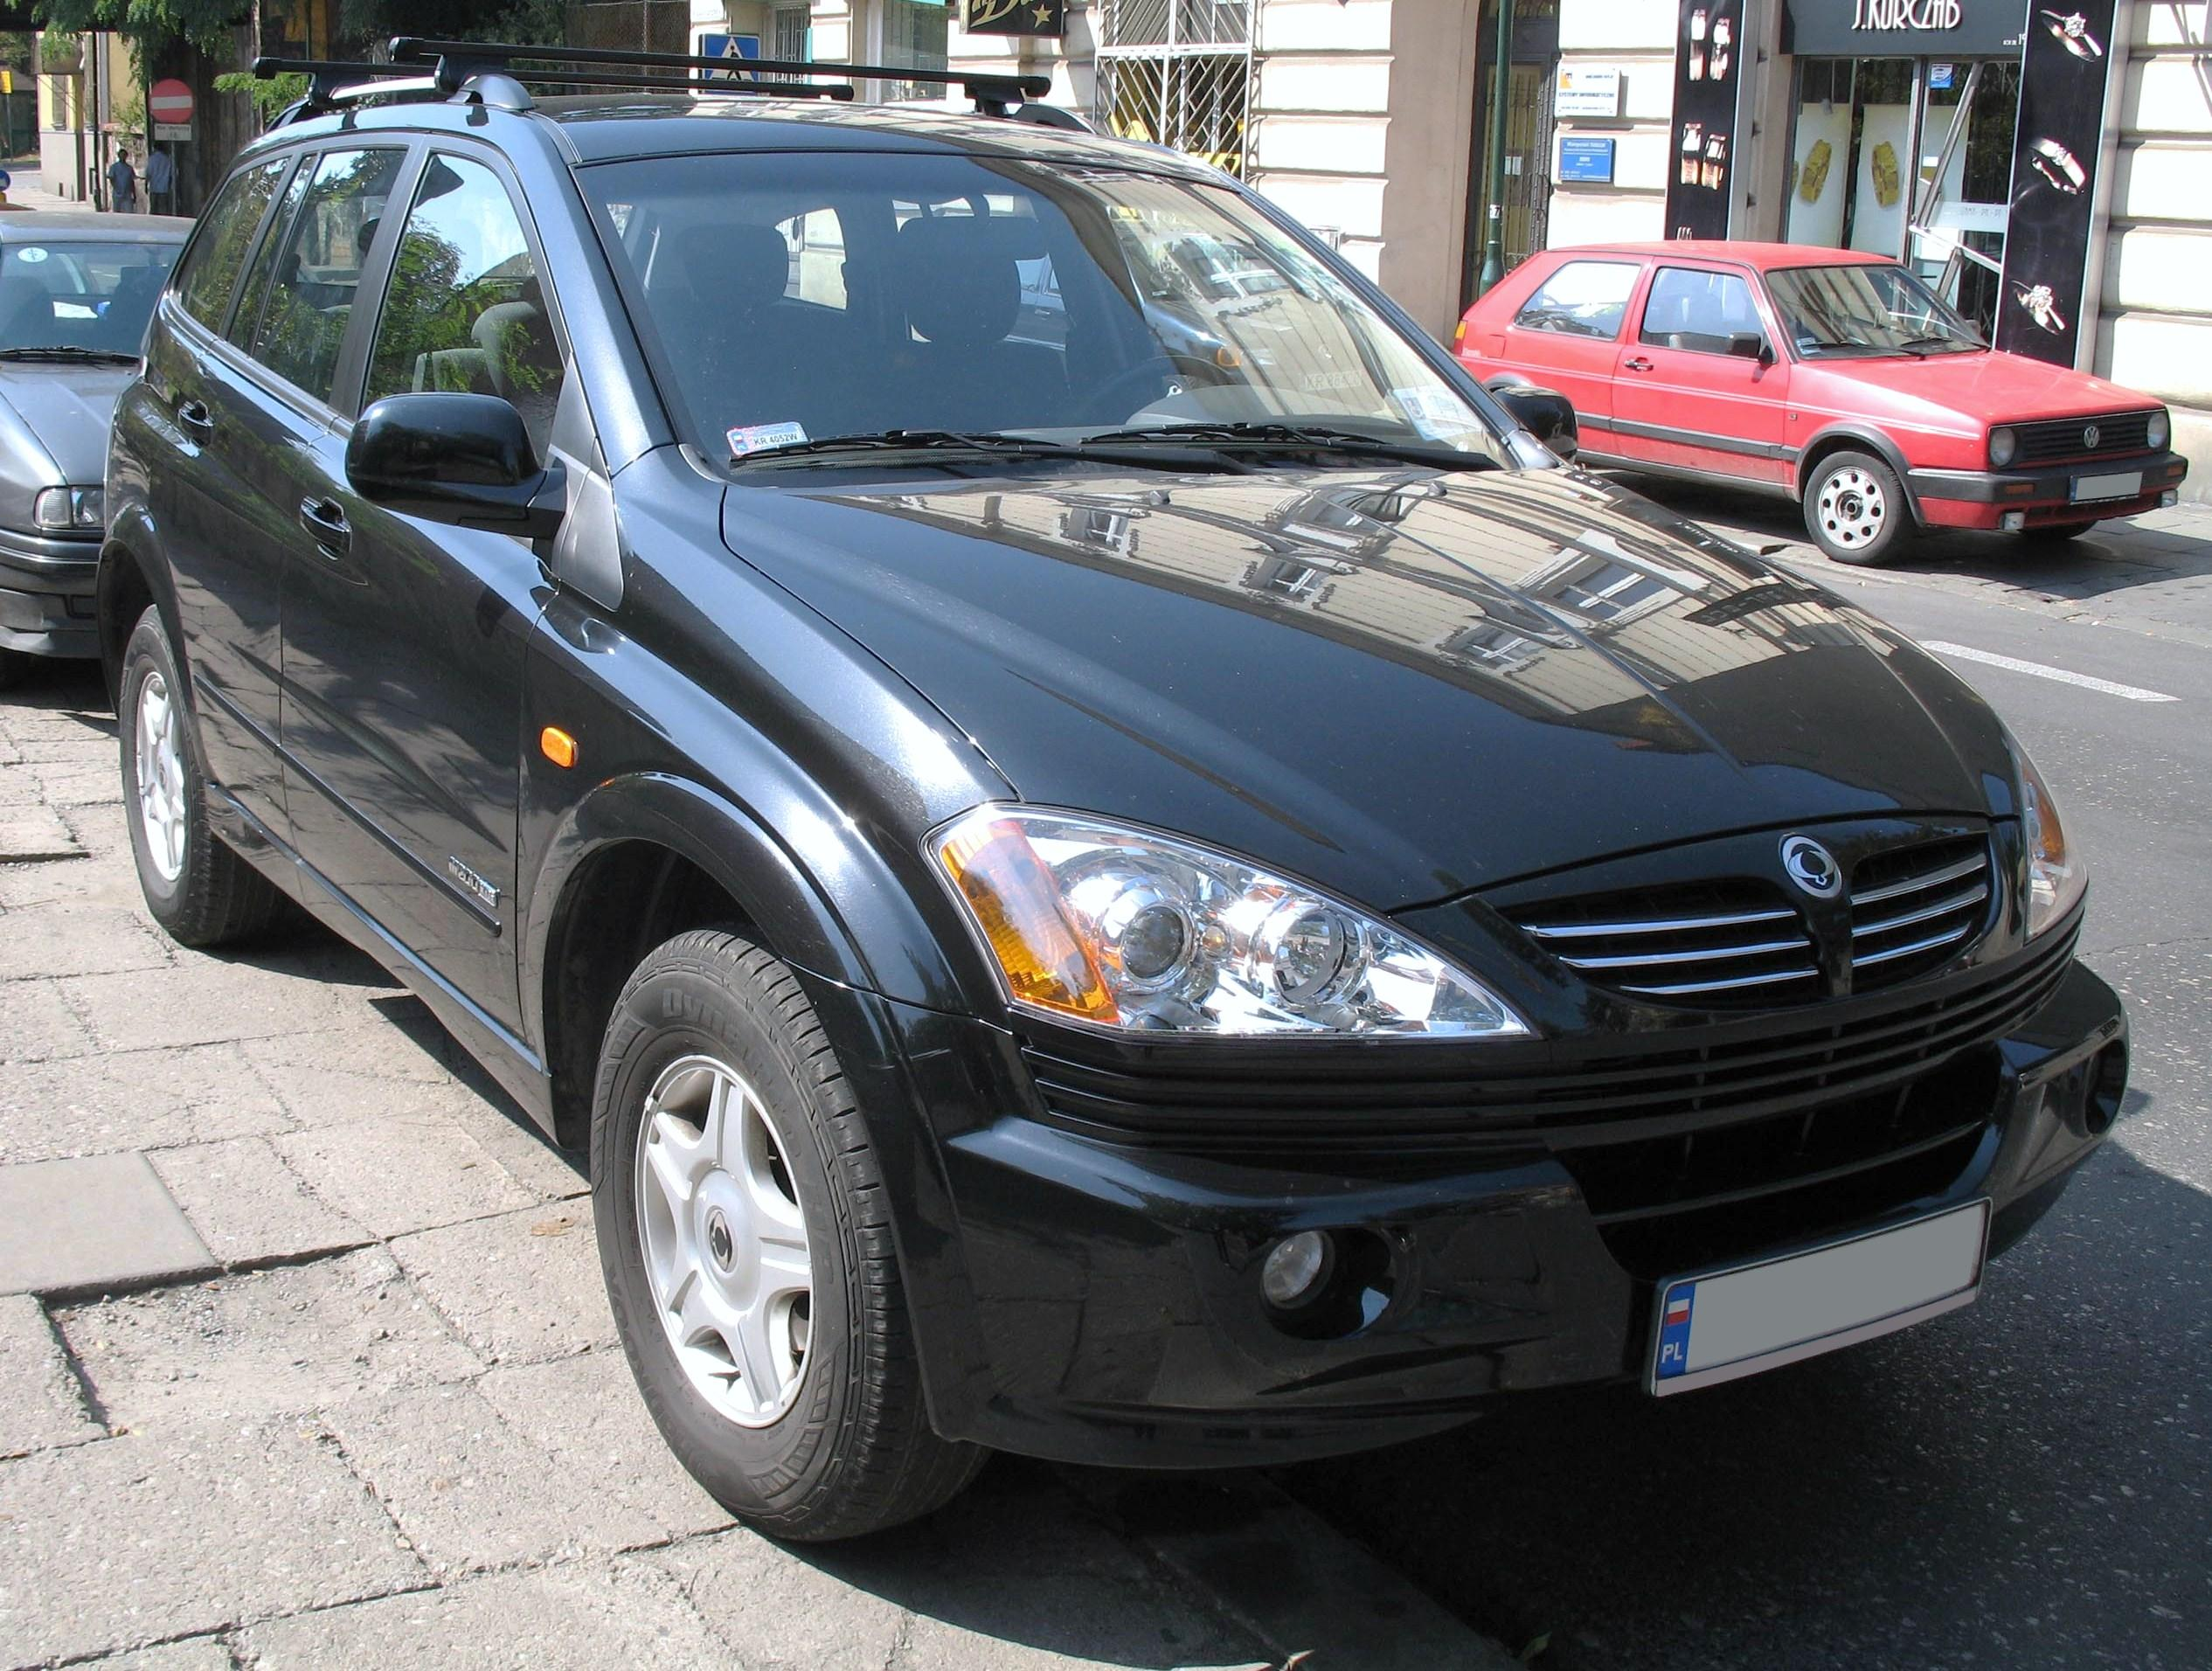 ssangyong kyron images